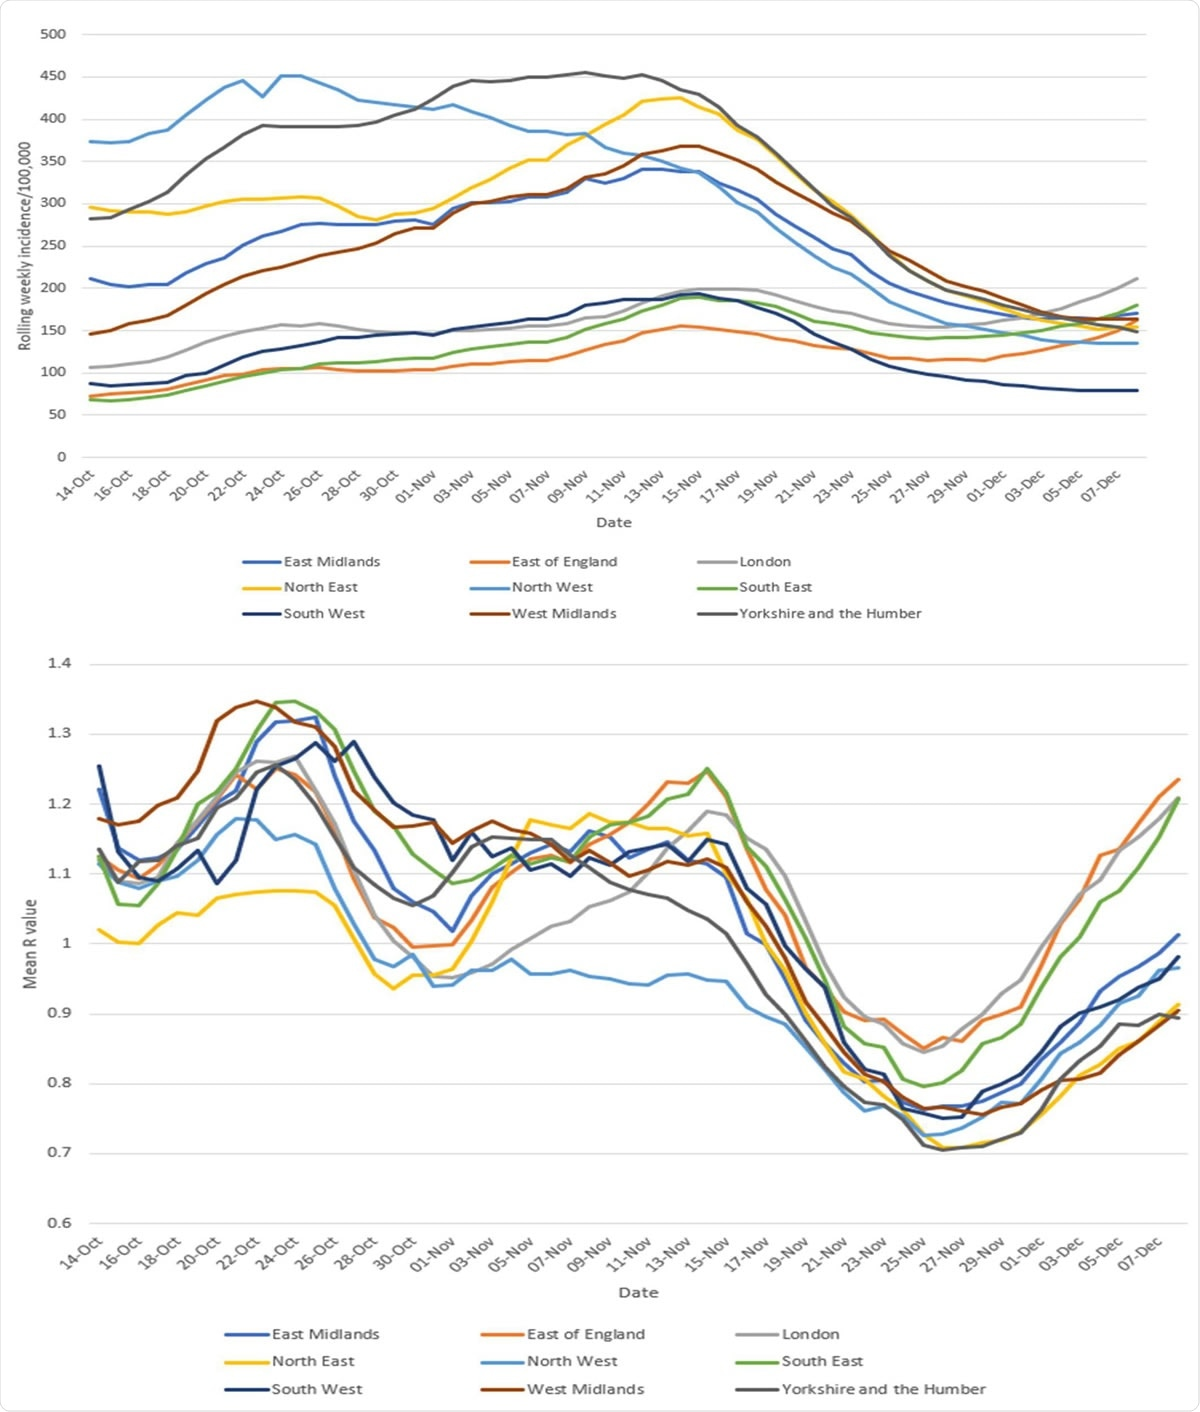 Rolling 7 day incidence by region and associated mean R values by region